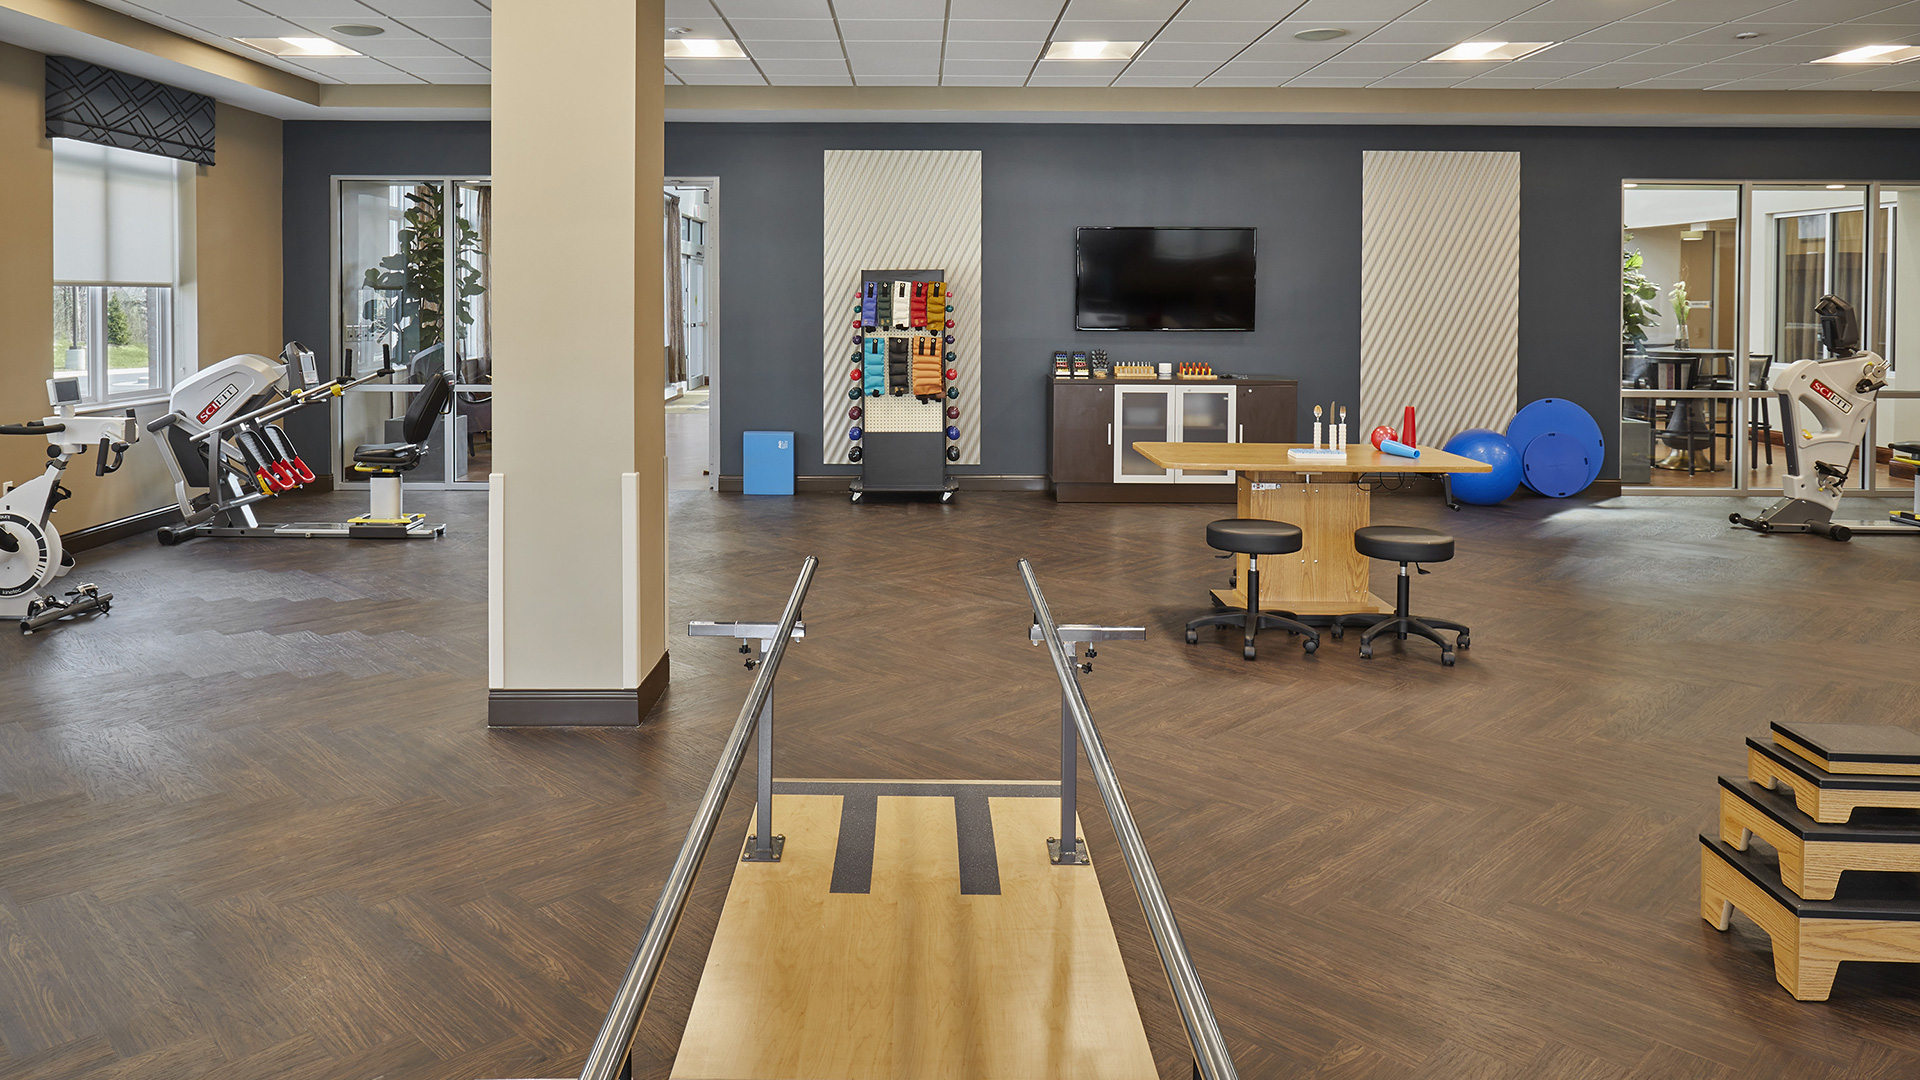 Within our physical therapy and occupational therapy gym our team works to inspire our patients to attain their goals and to reach their higher level of independence.